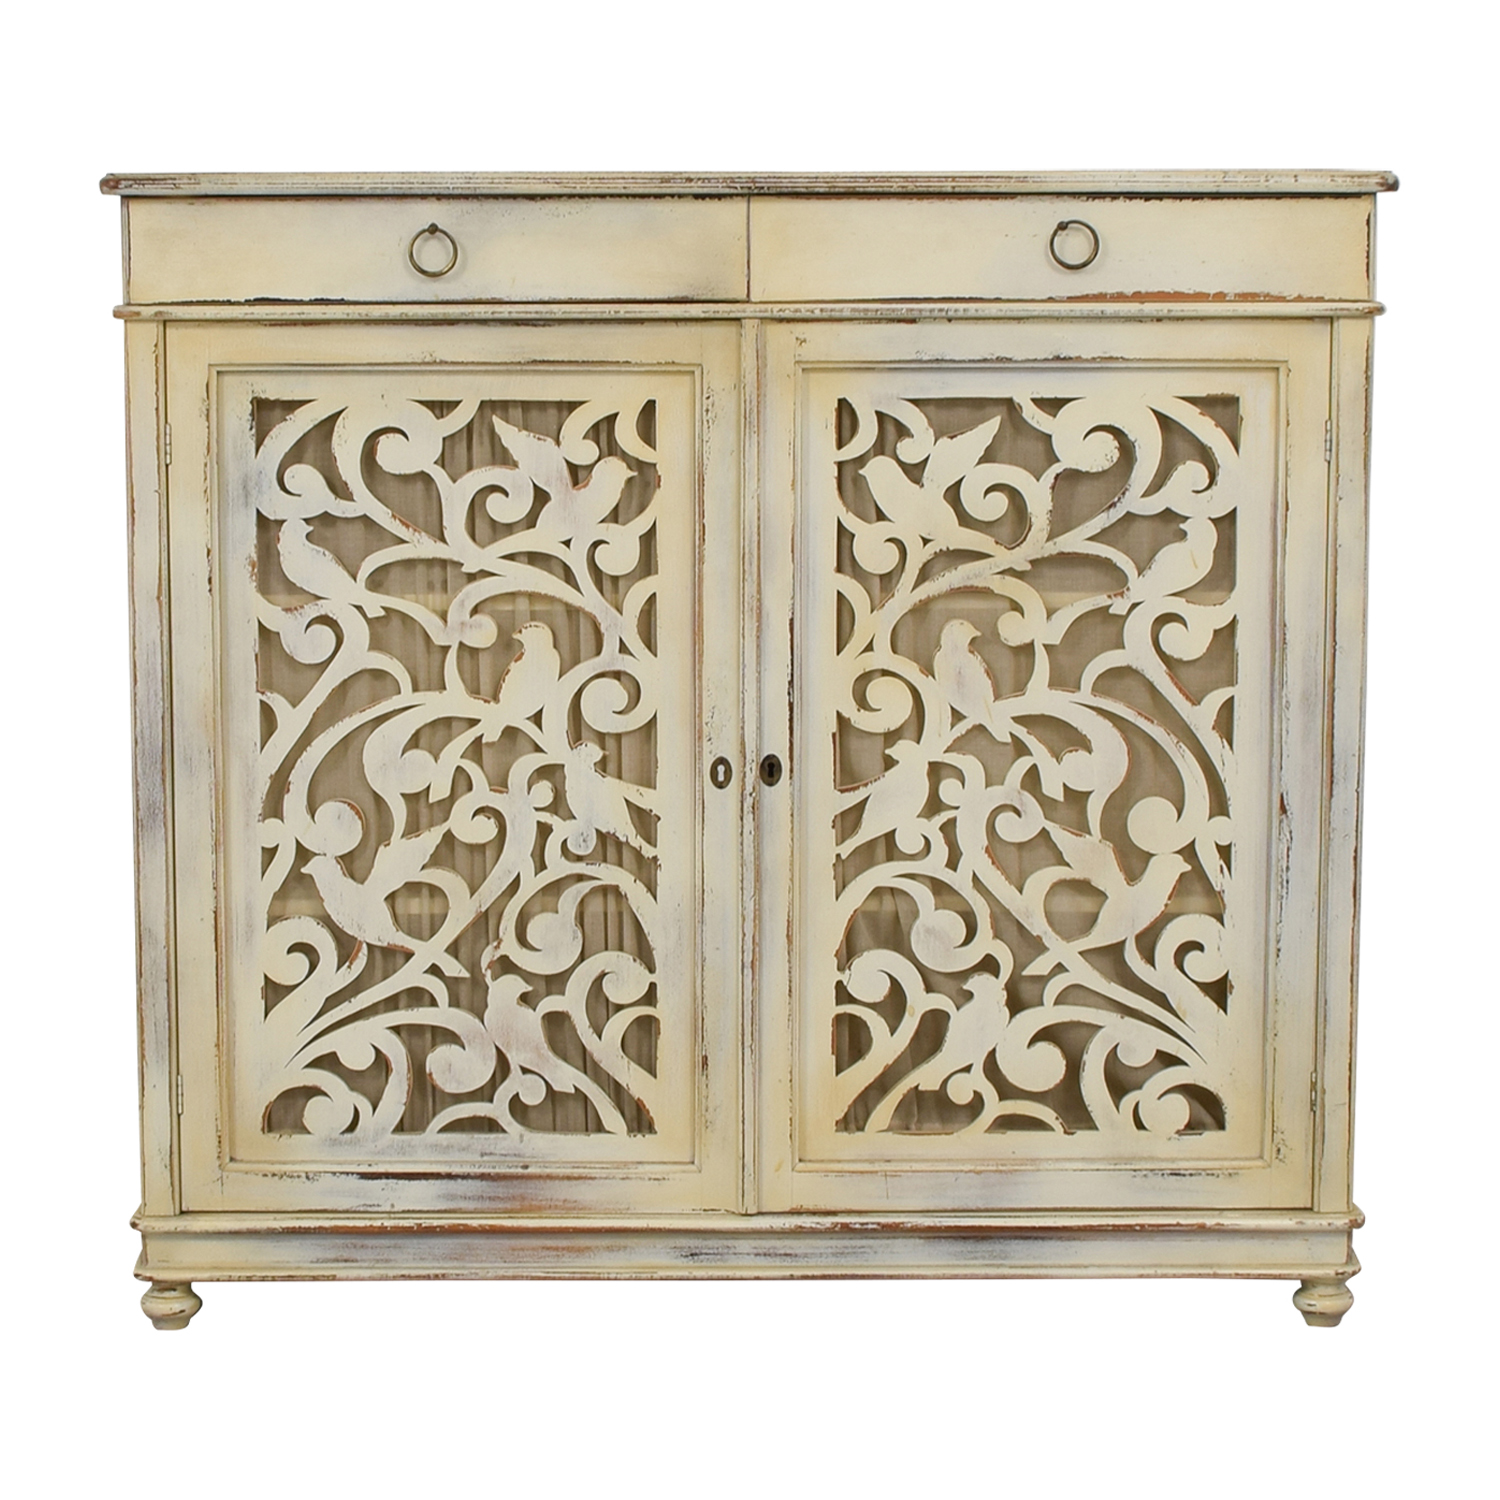 Buying & Design Buying & Design Antique Distressed White Cabinet for sale